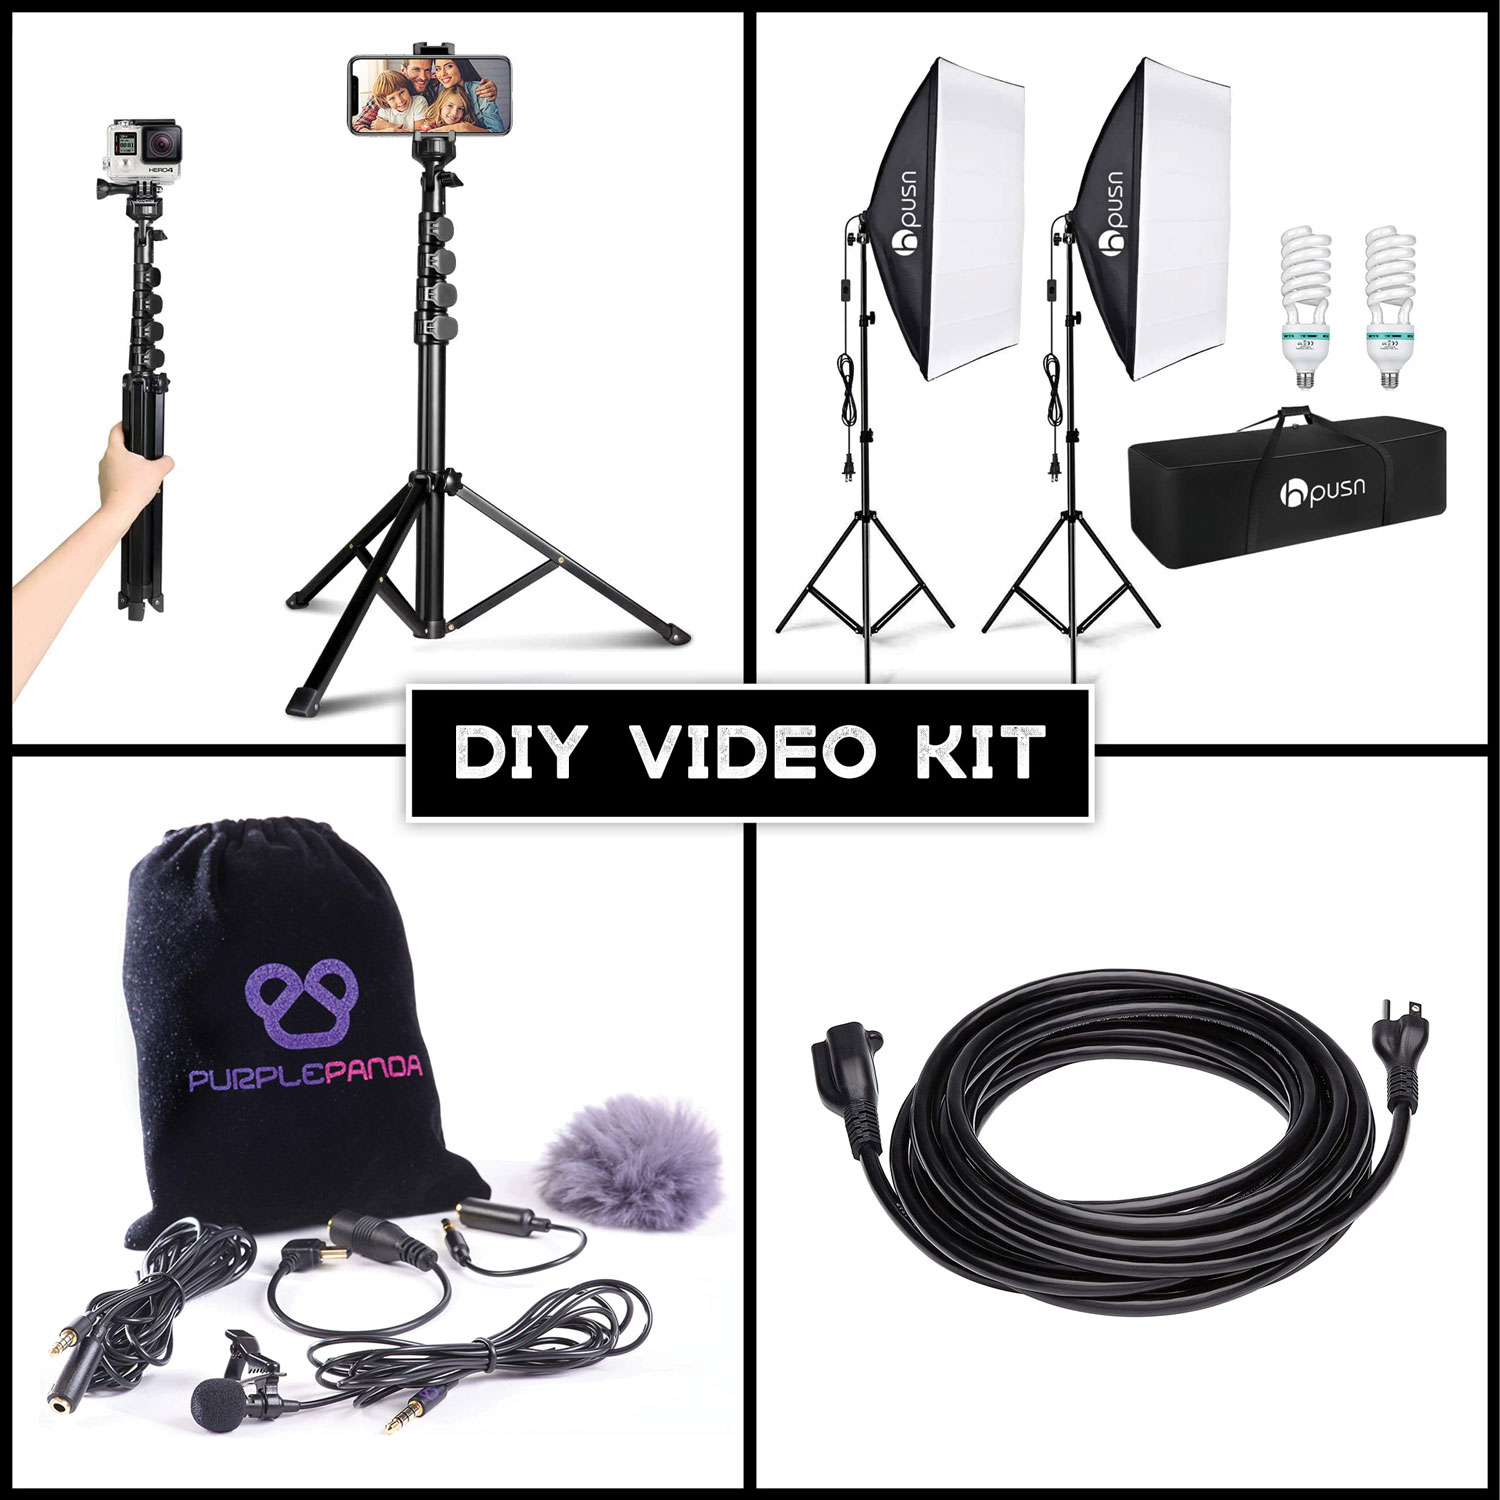 diy-video-kit-web